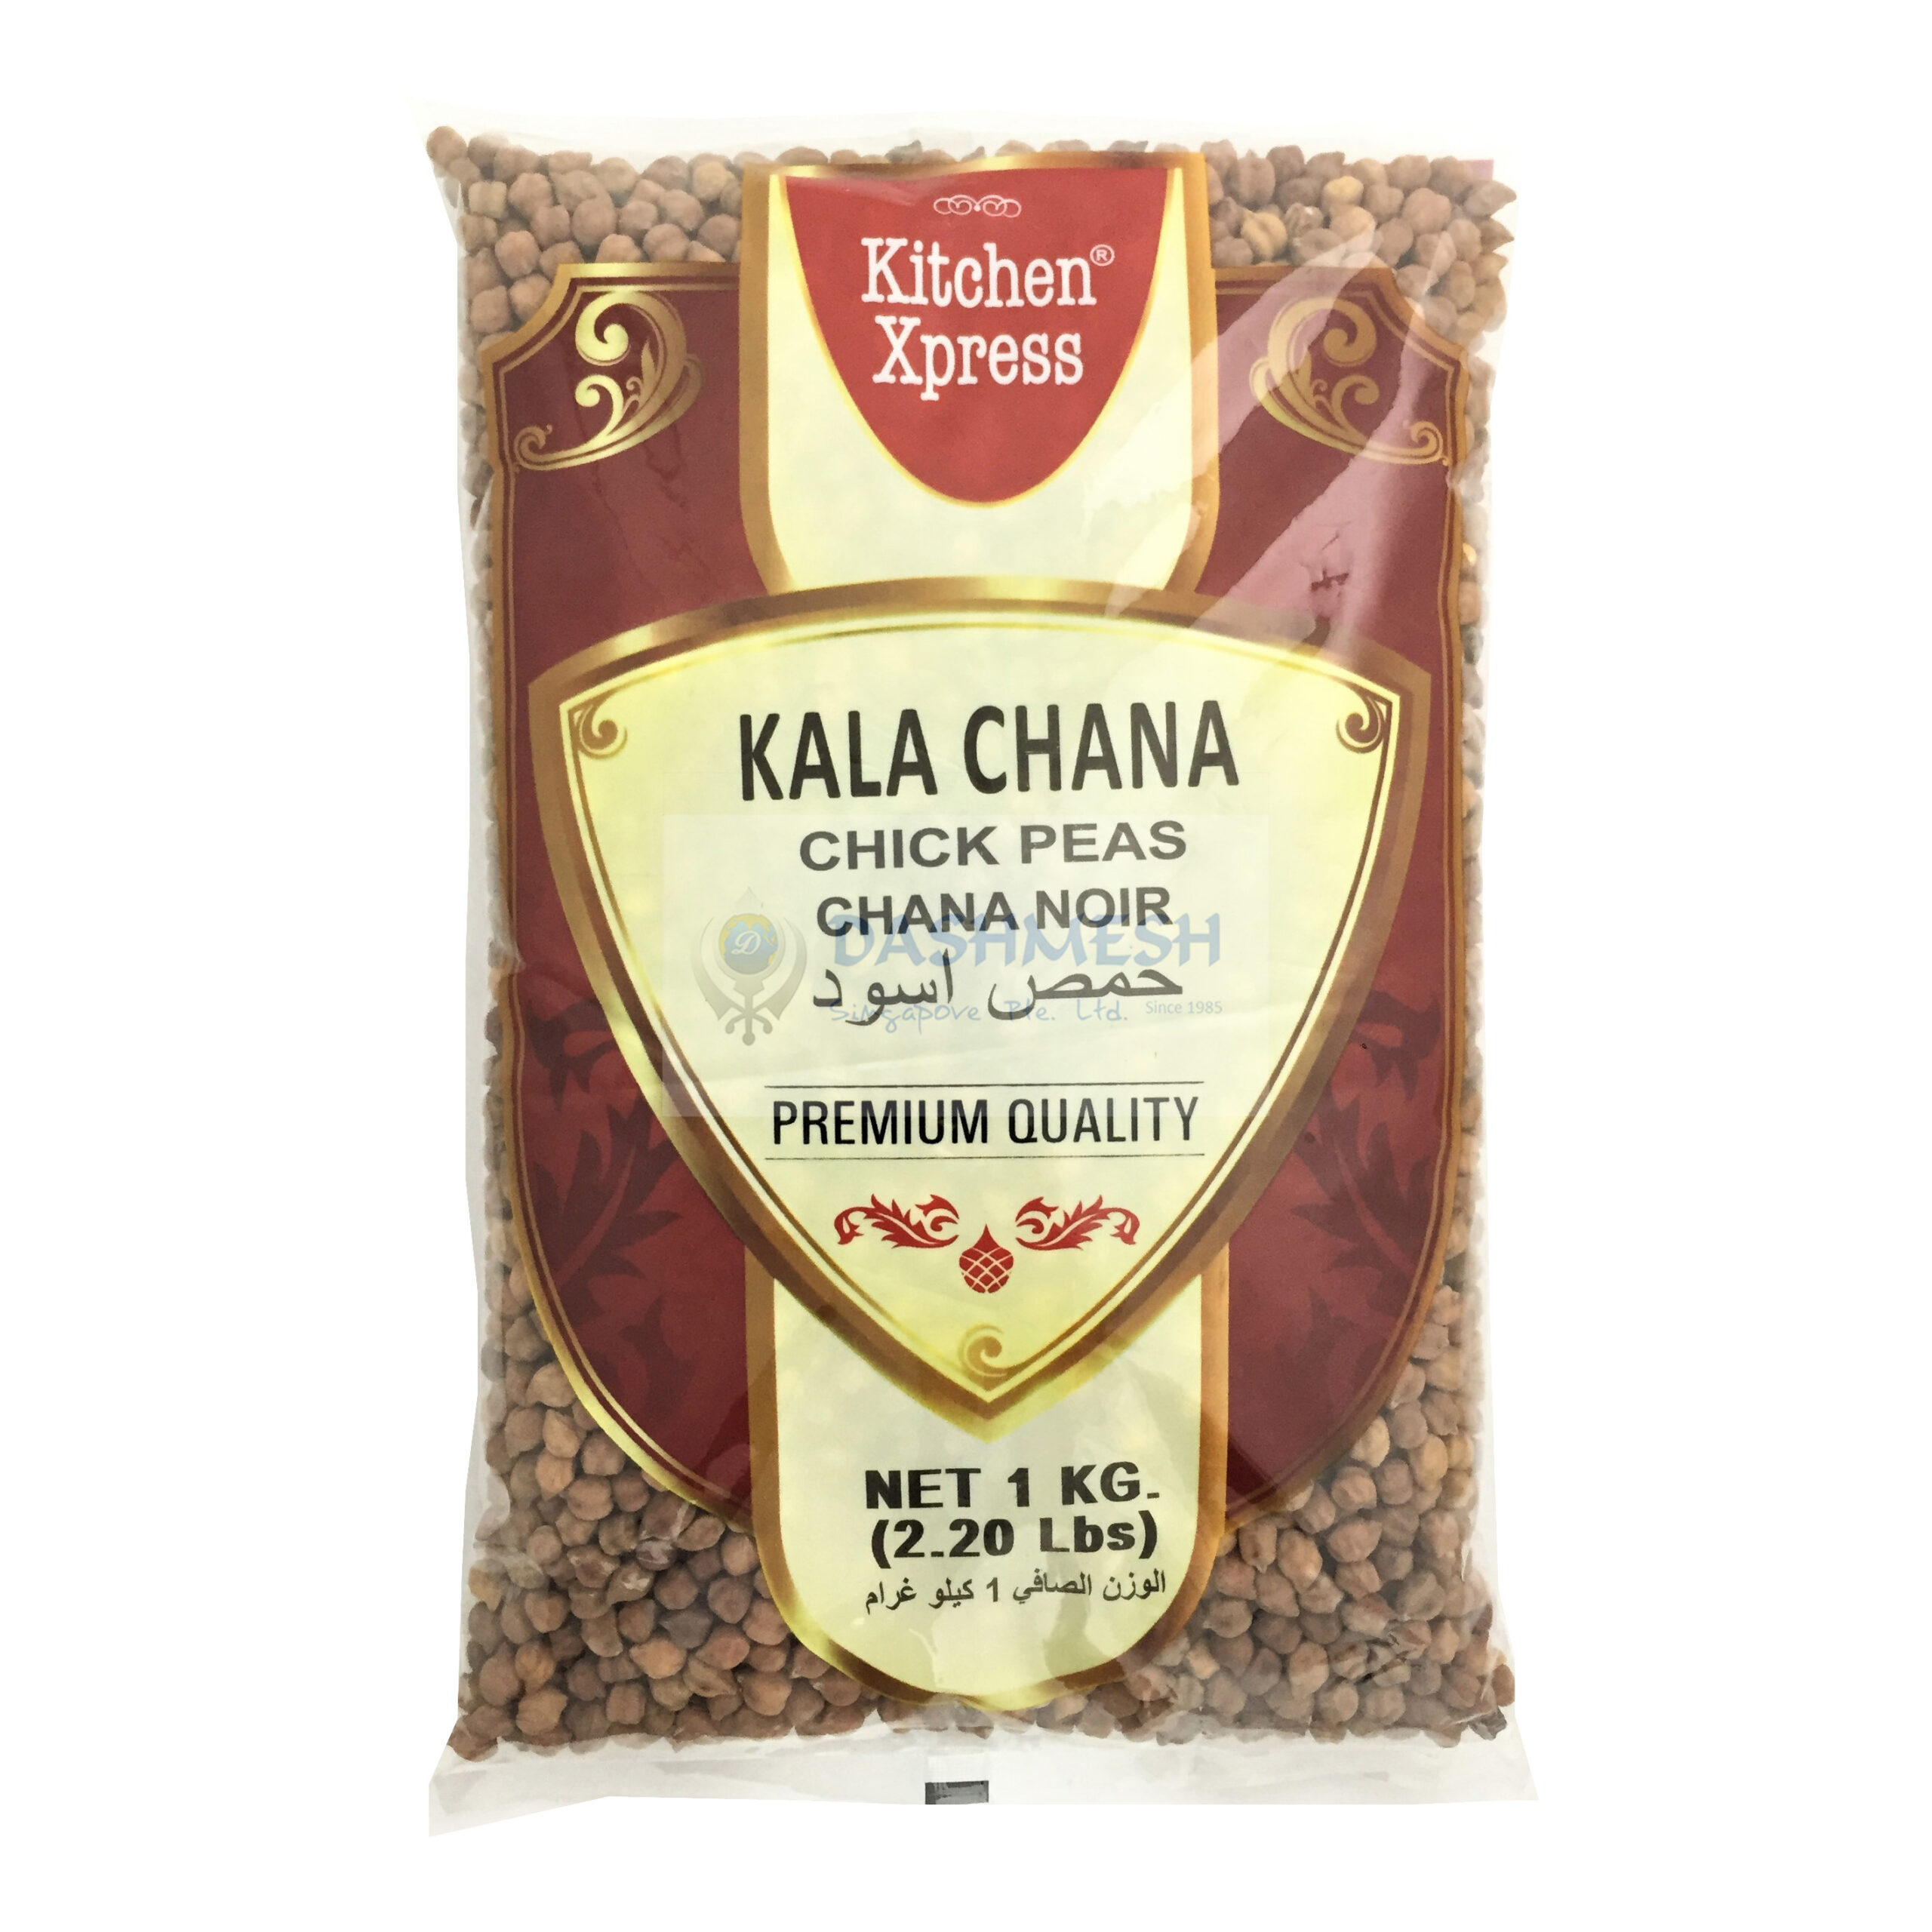 Kitchen Xpress Kala Chana 500g, 1Kg & 5Kg